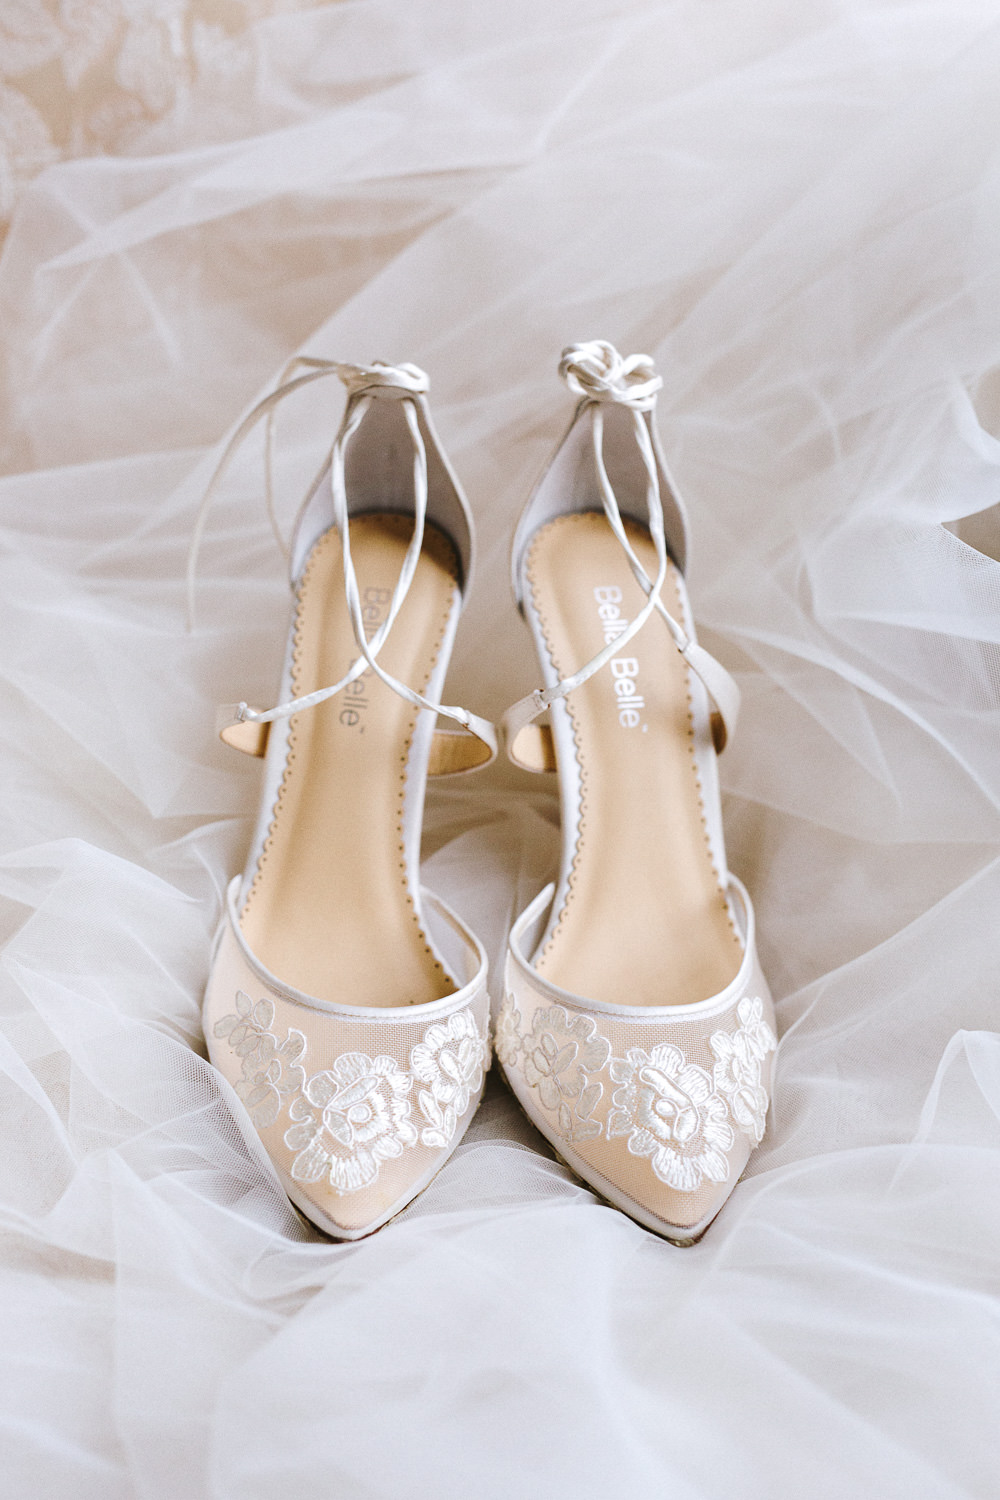 Bella Belle Shoes | Italy wedding photographer for exclusive events